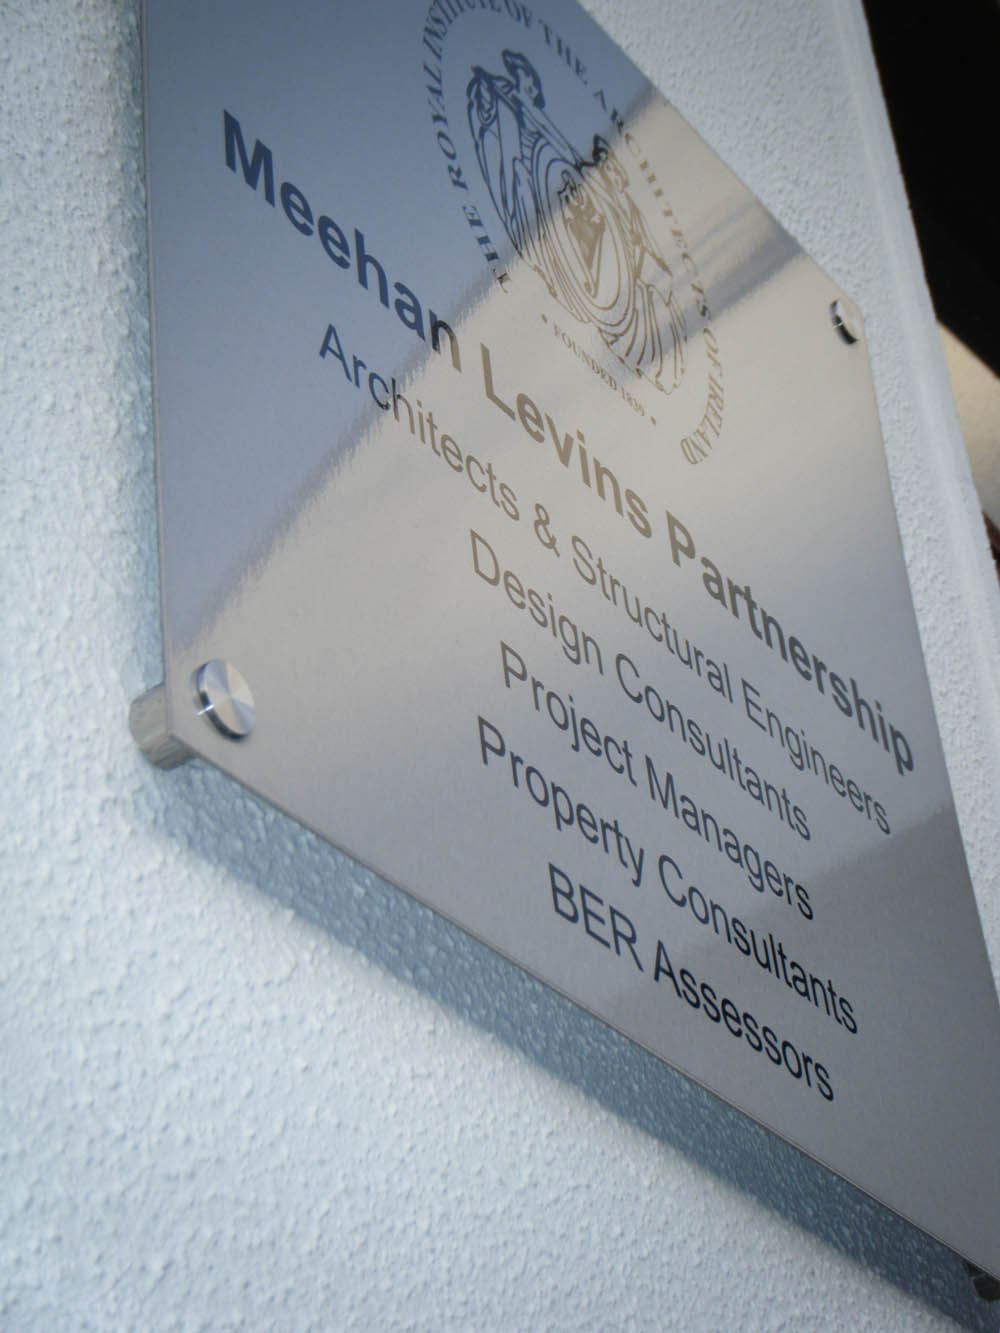 C) Brushed Aluminuim Plaque